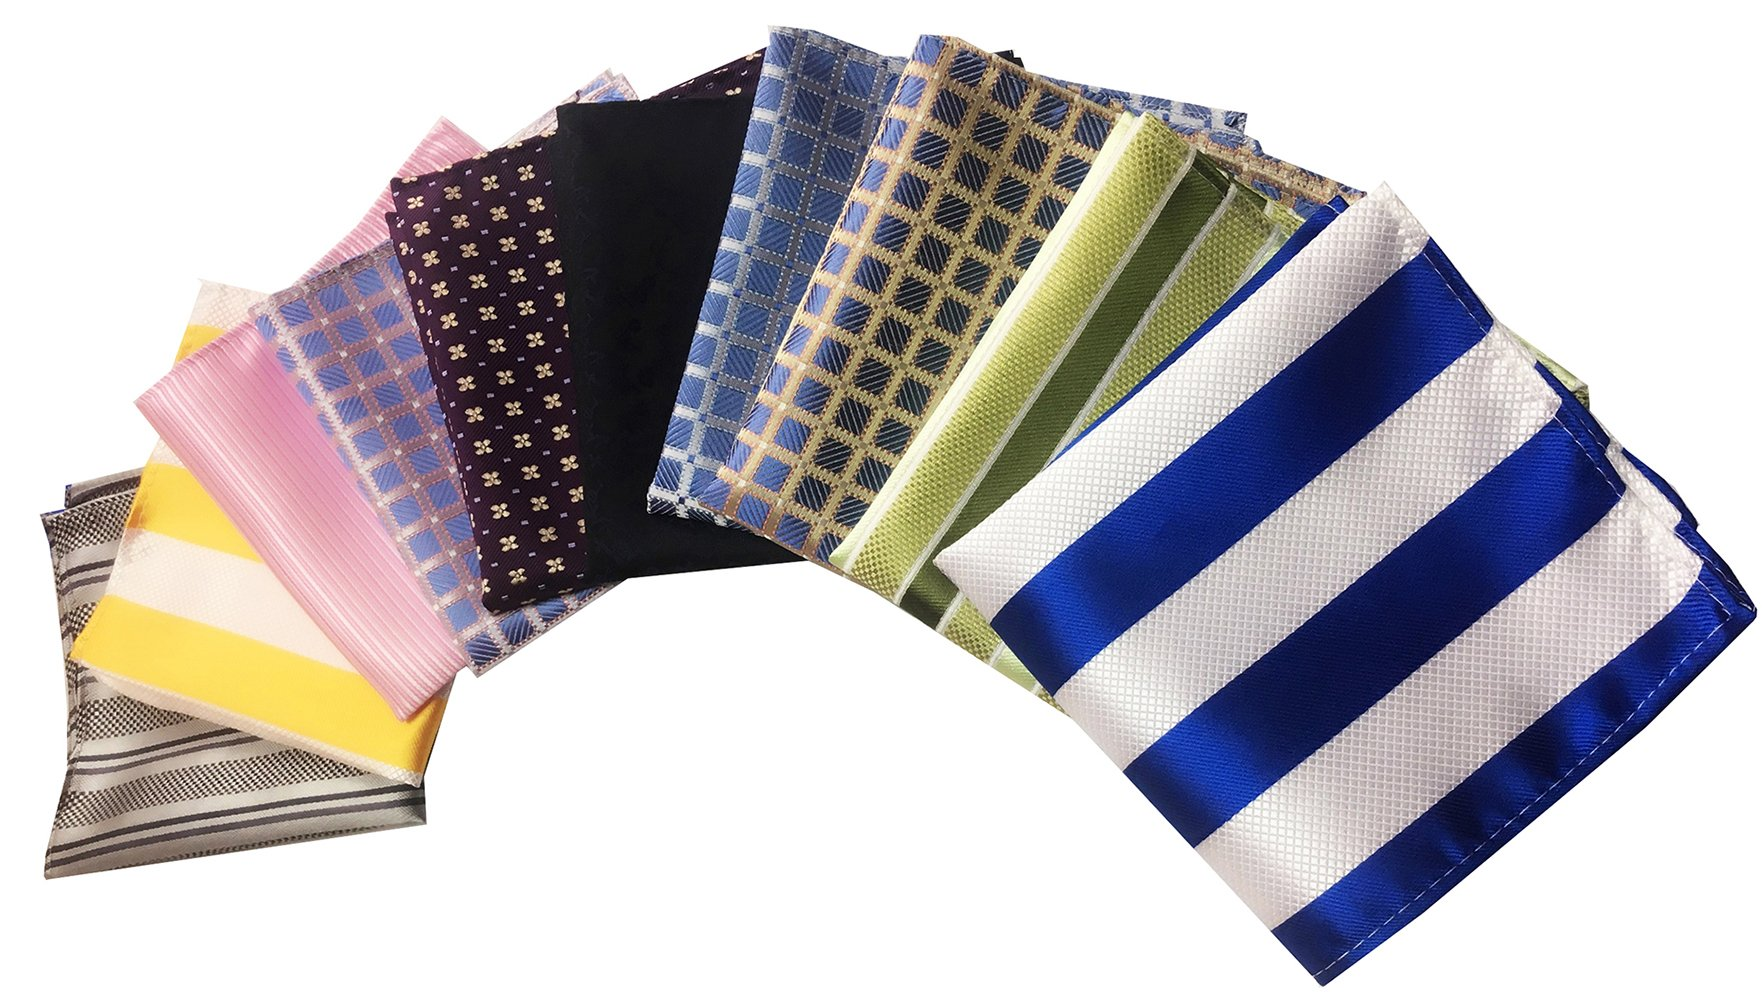 MENDENG Men's 10 Pack Mixed Color Striped Plaid Pocket Square Party Handkerchief by MENDENG (Image #1)